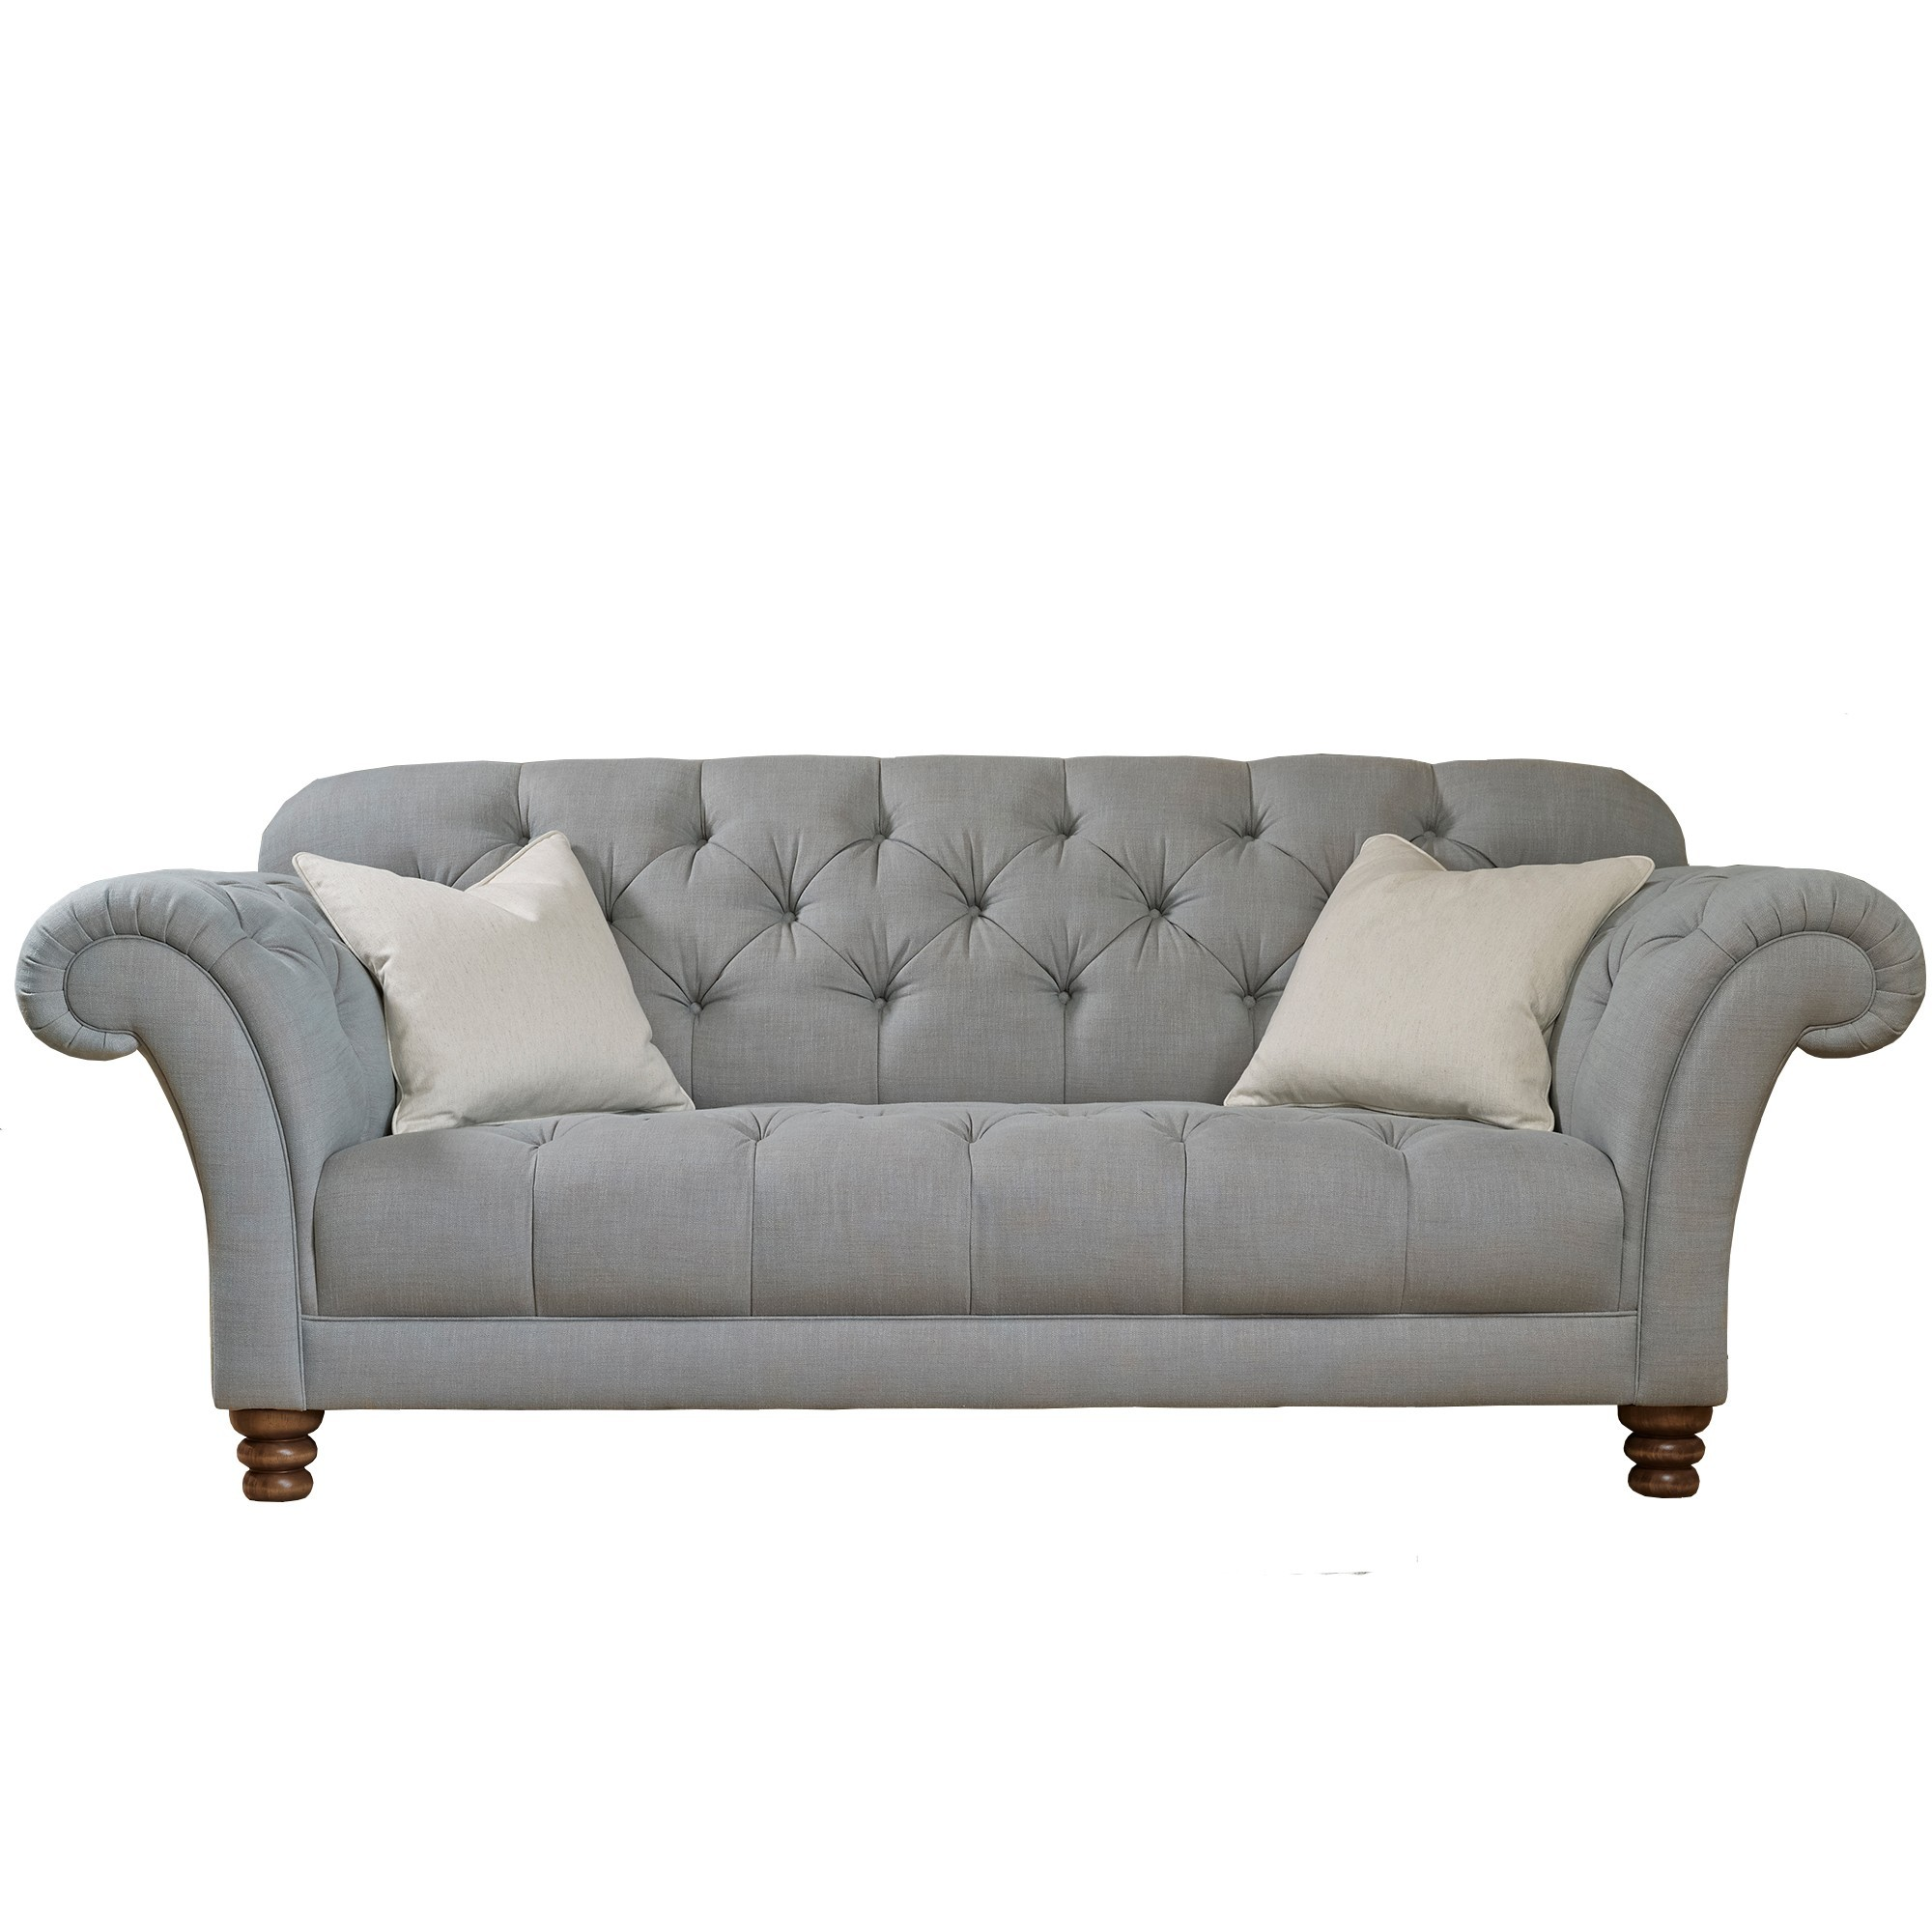 Wade upholstery henry large sofa wade upholstery cookes furniture Sofa aufpolstern